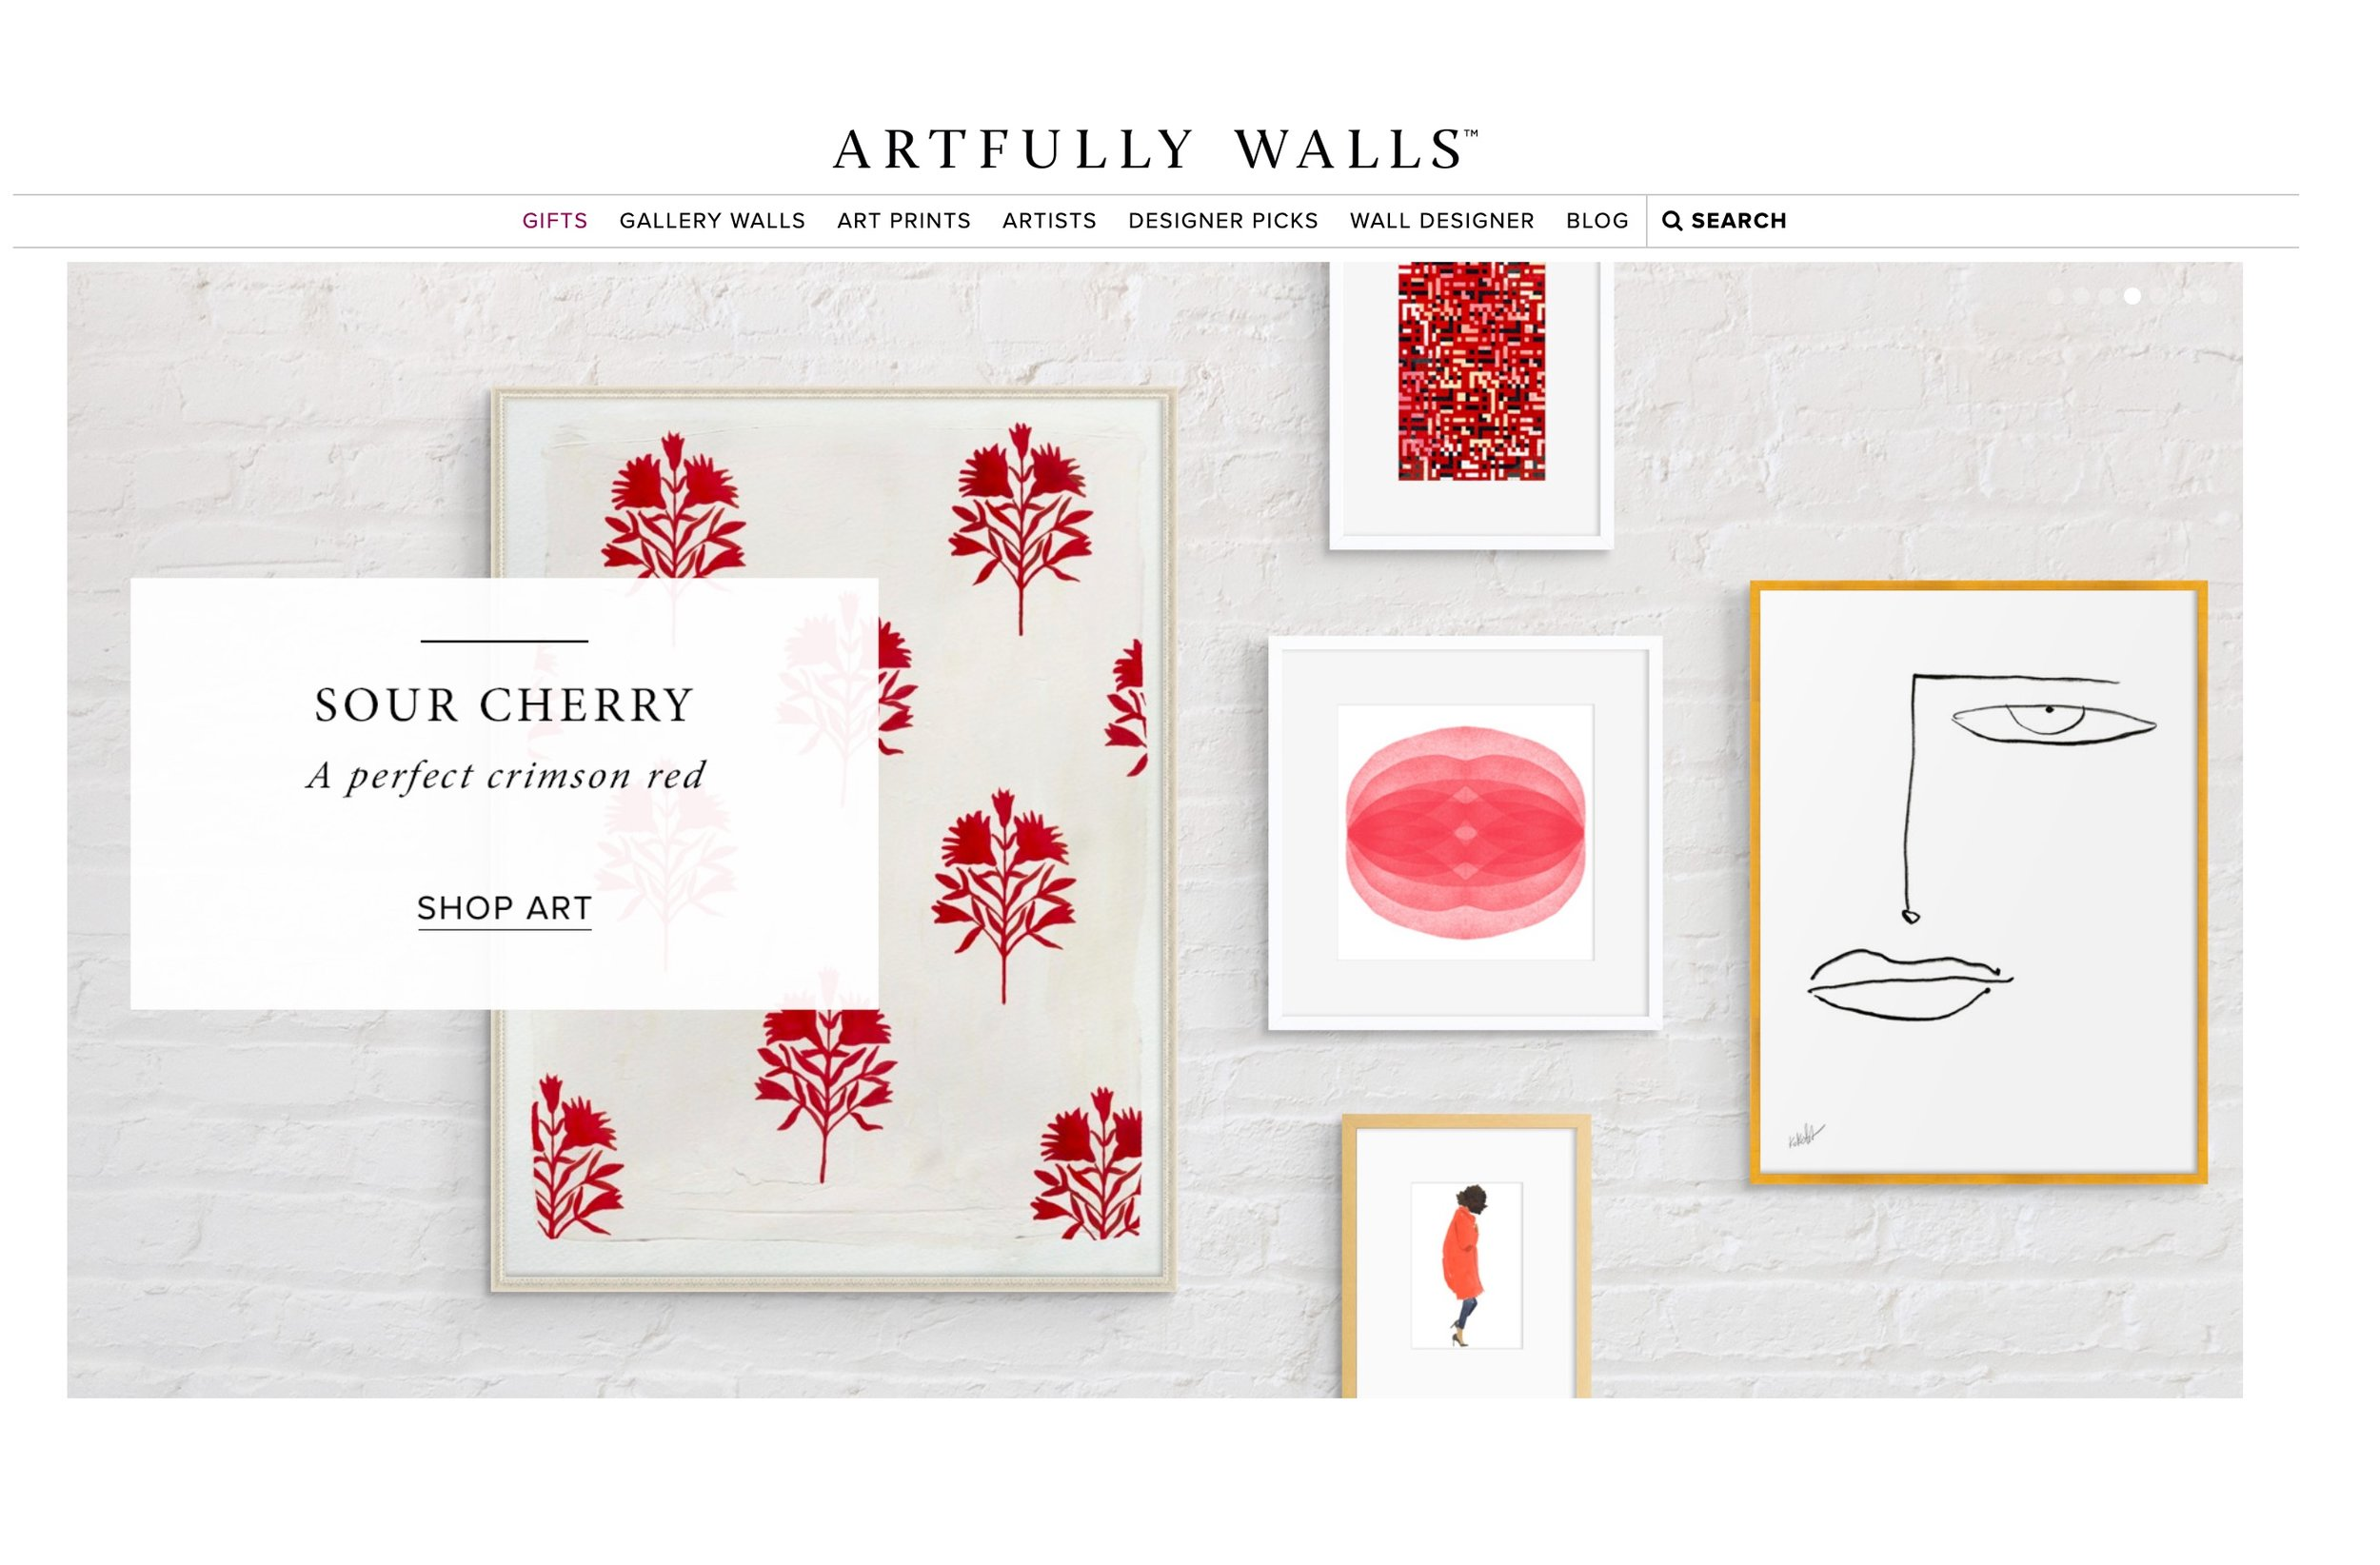 artfully-walls-jessica-poundstone-feature-sour-cherry-art.jpg